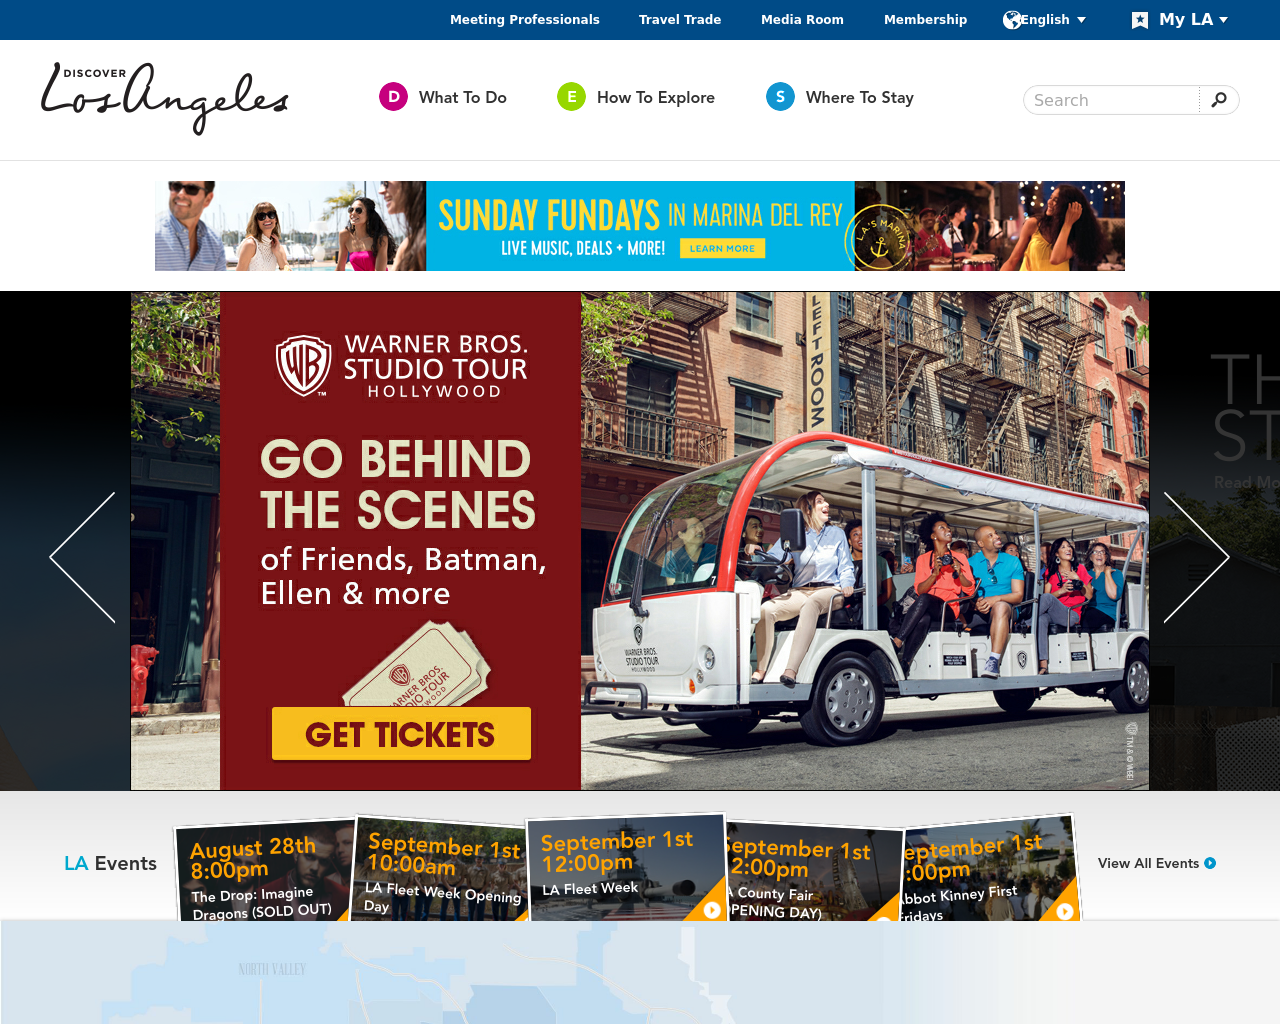 Discover-Los-Angeles-Advertising-Reviews-Pricing